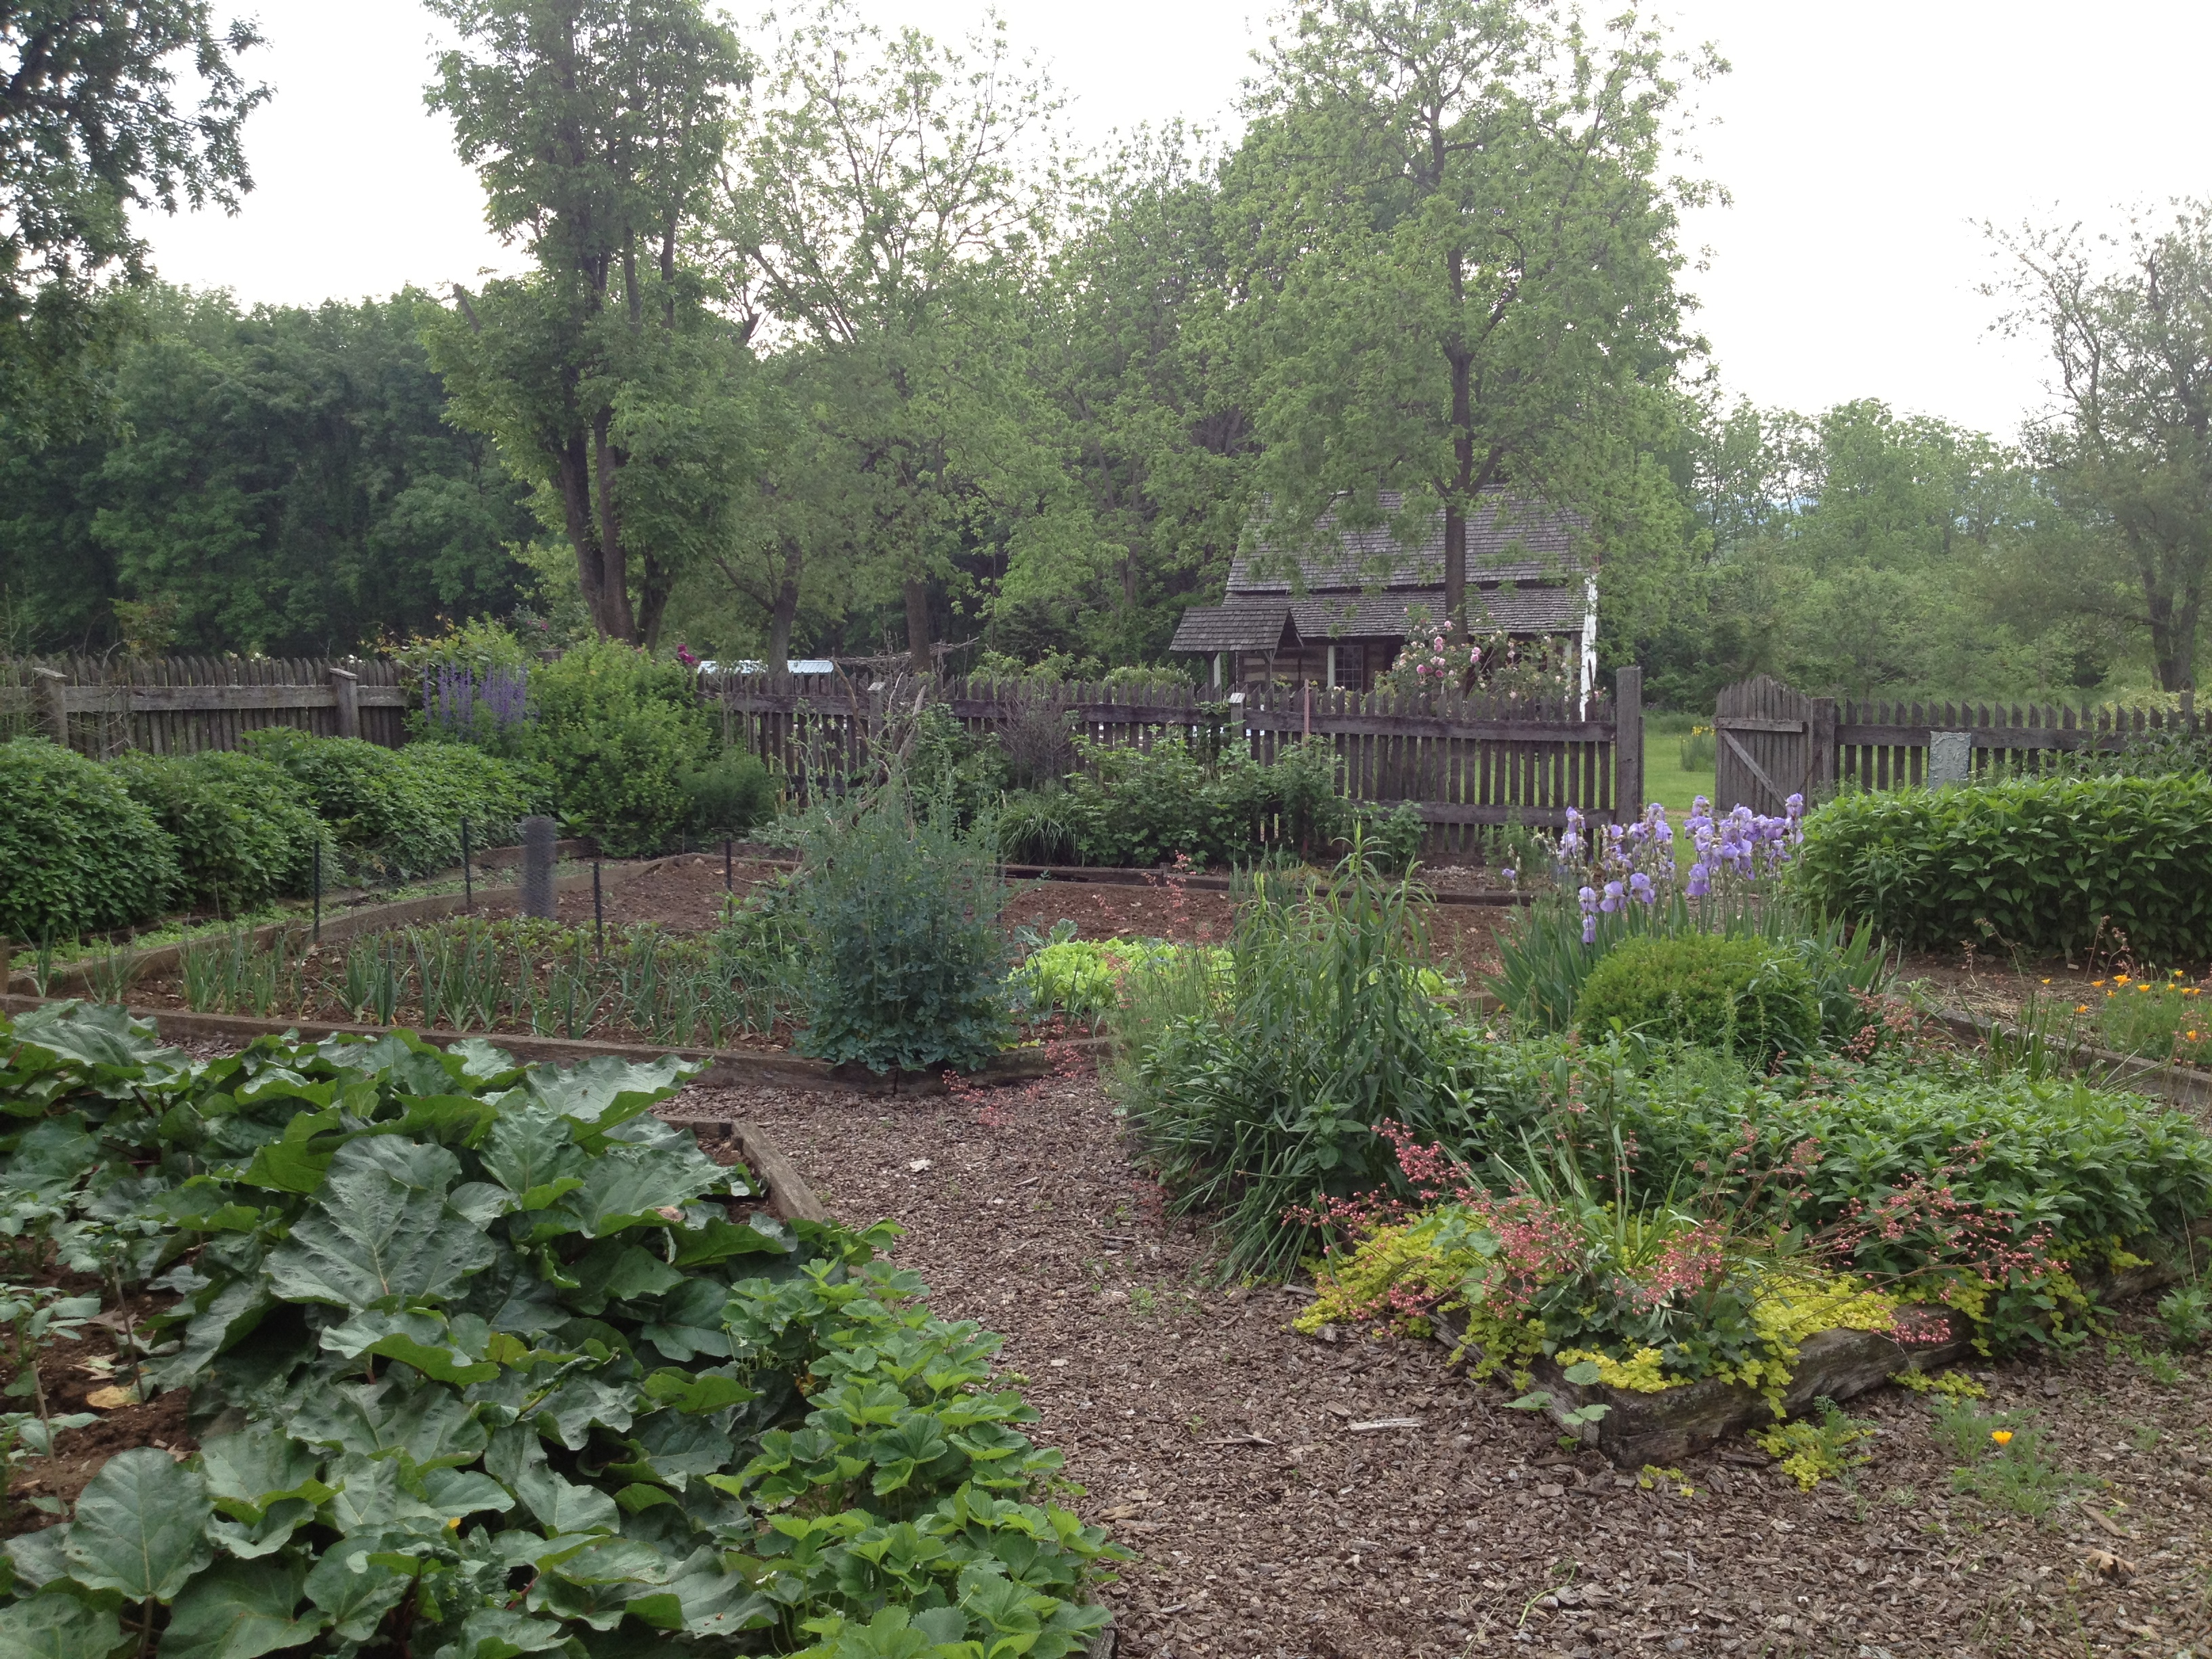 German four square garden with Negley Log House in the background. This demonstration garden includes fruit, vegetables, herbs and ornamental flowers. The site also boasts several old variety apple trees.